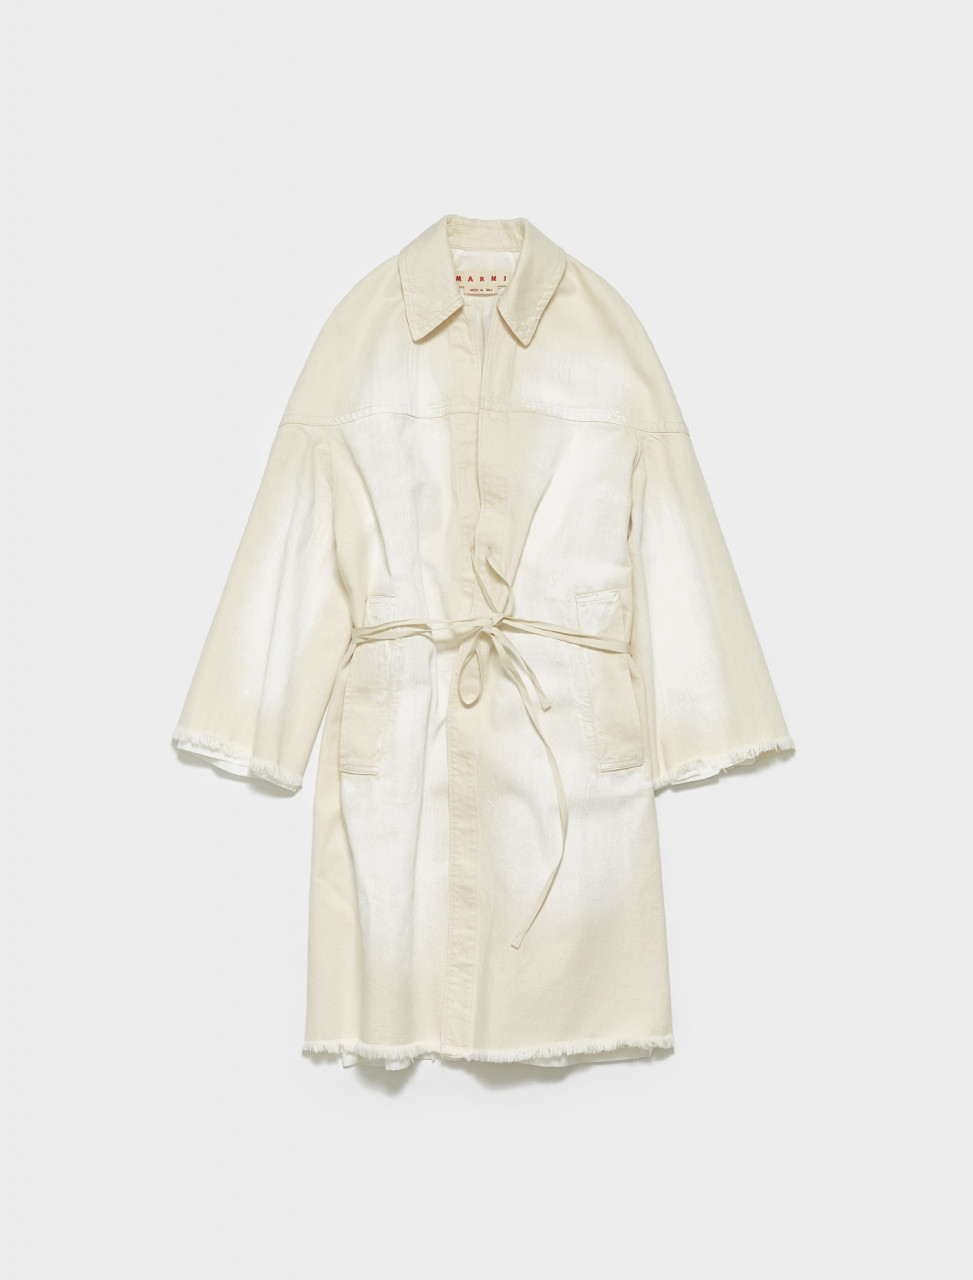 SPJD0181H8-AGW08 MARNI DUSTER COAT IN SNOW